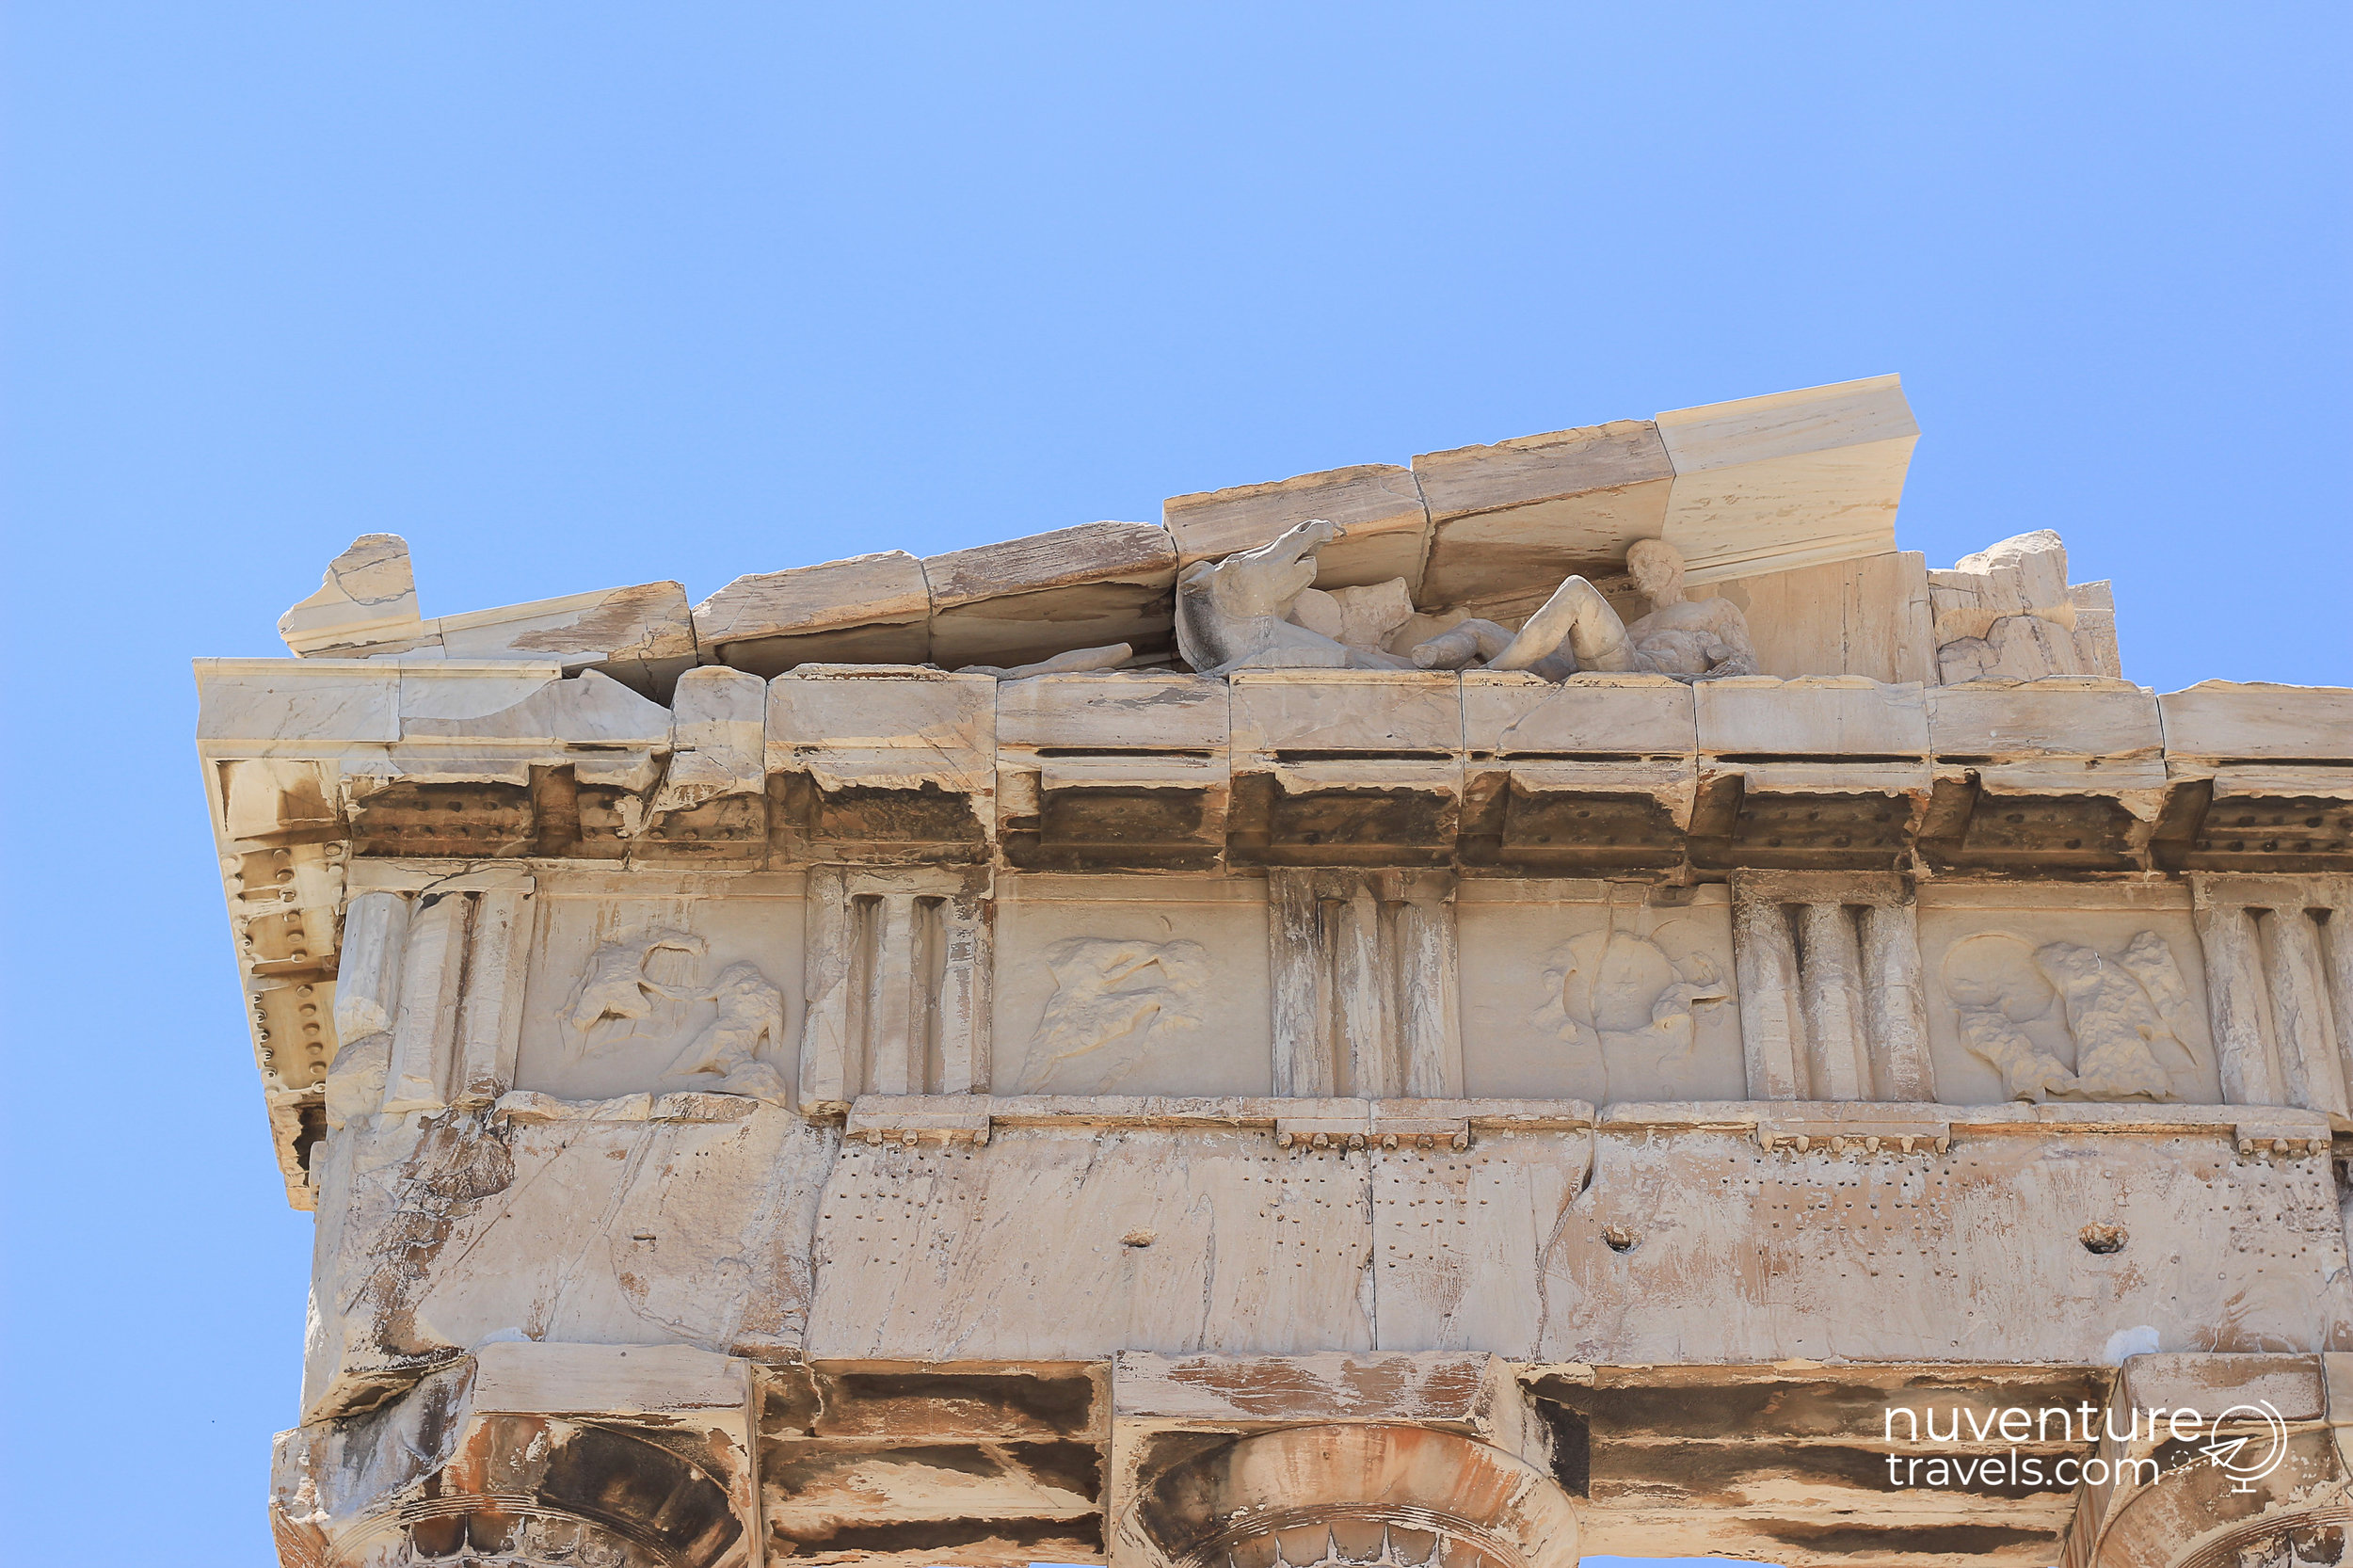 Carvings of the Parthenon